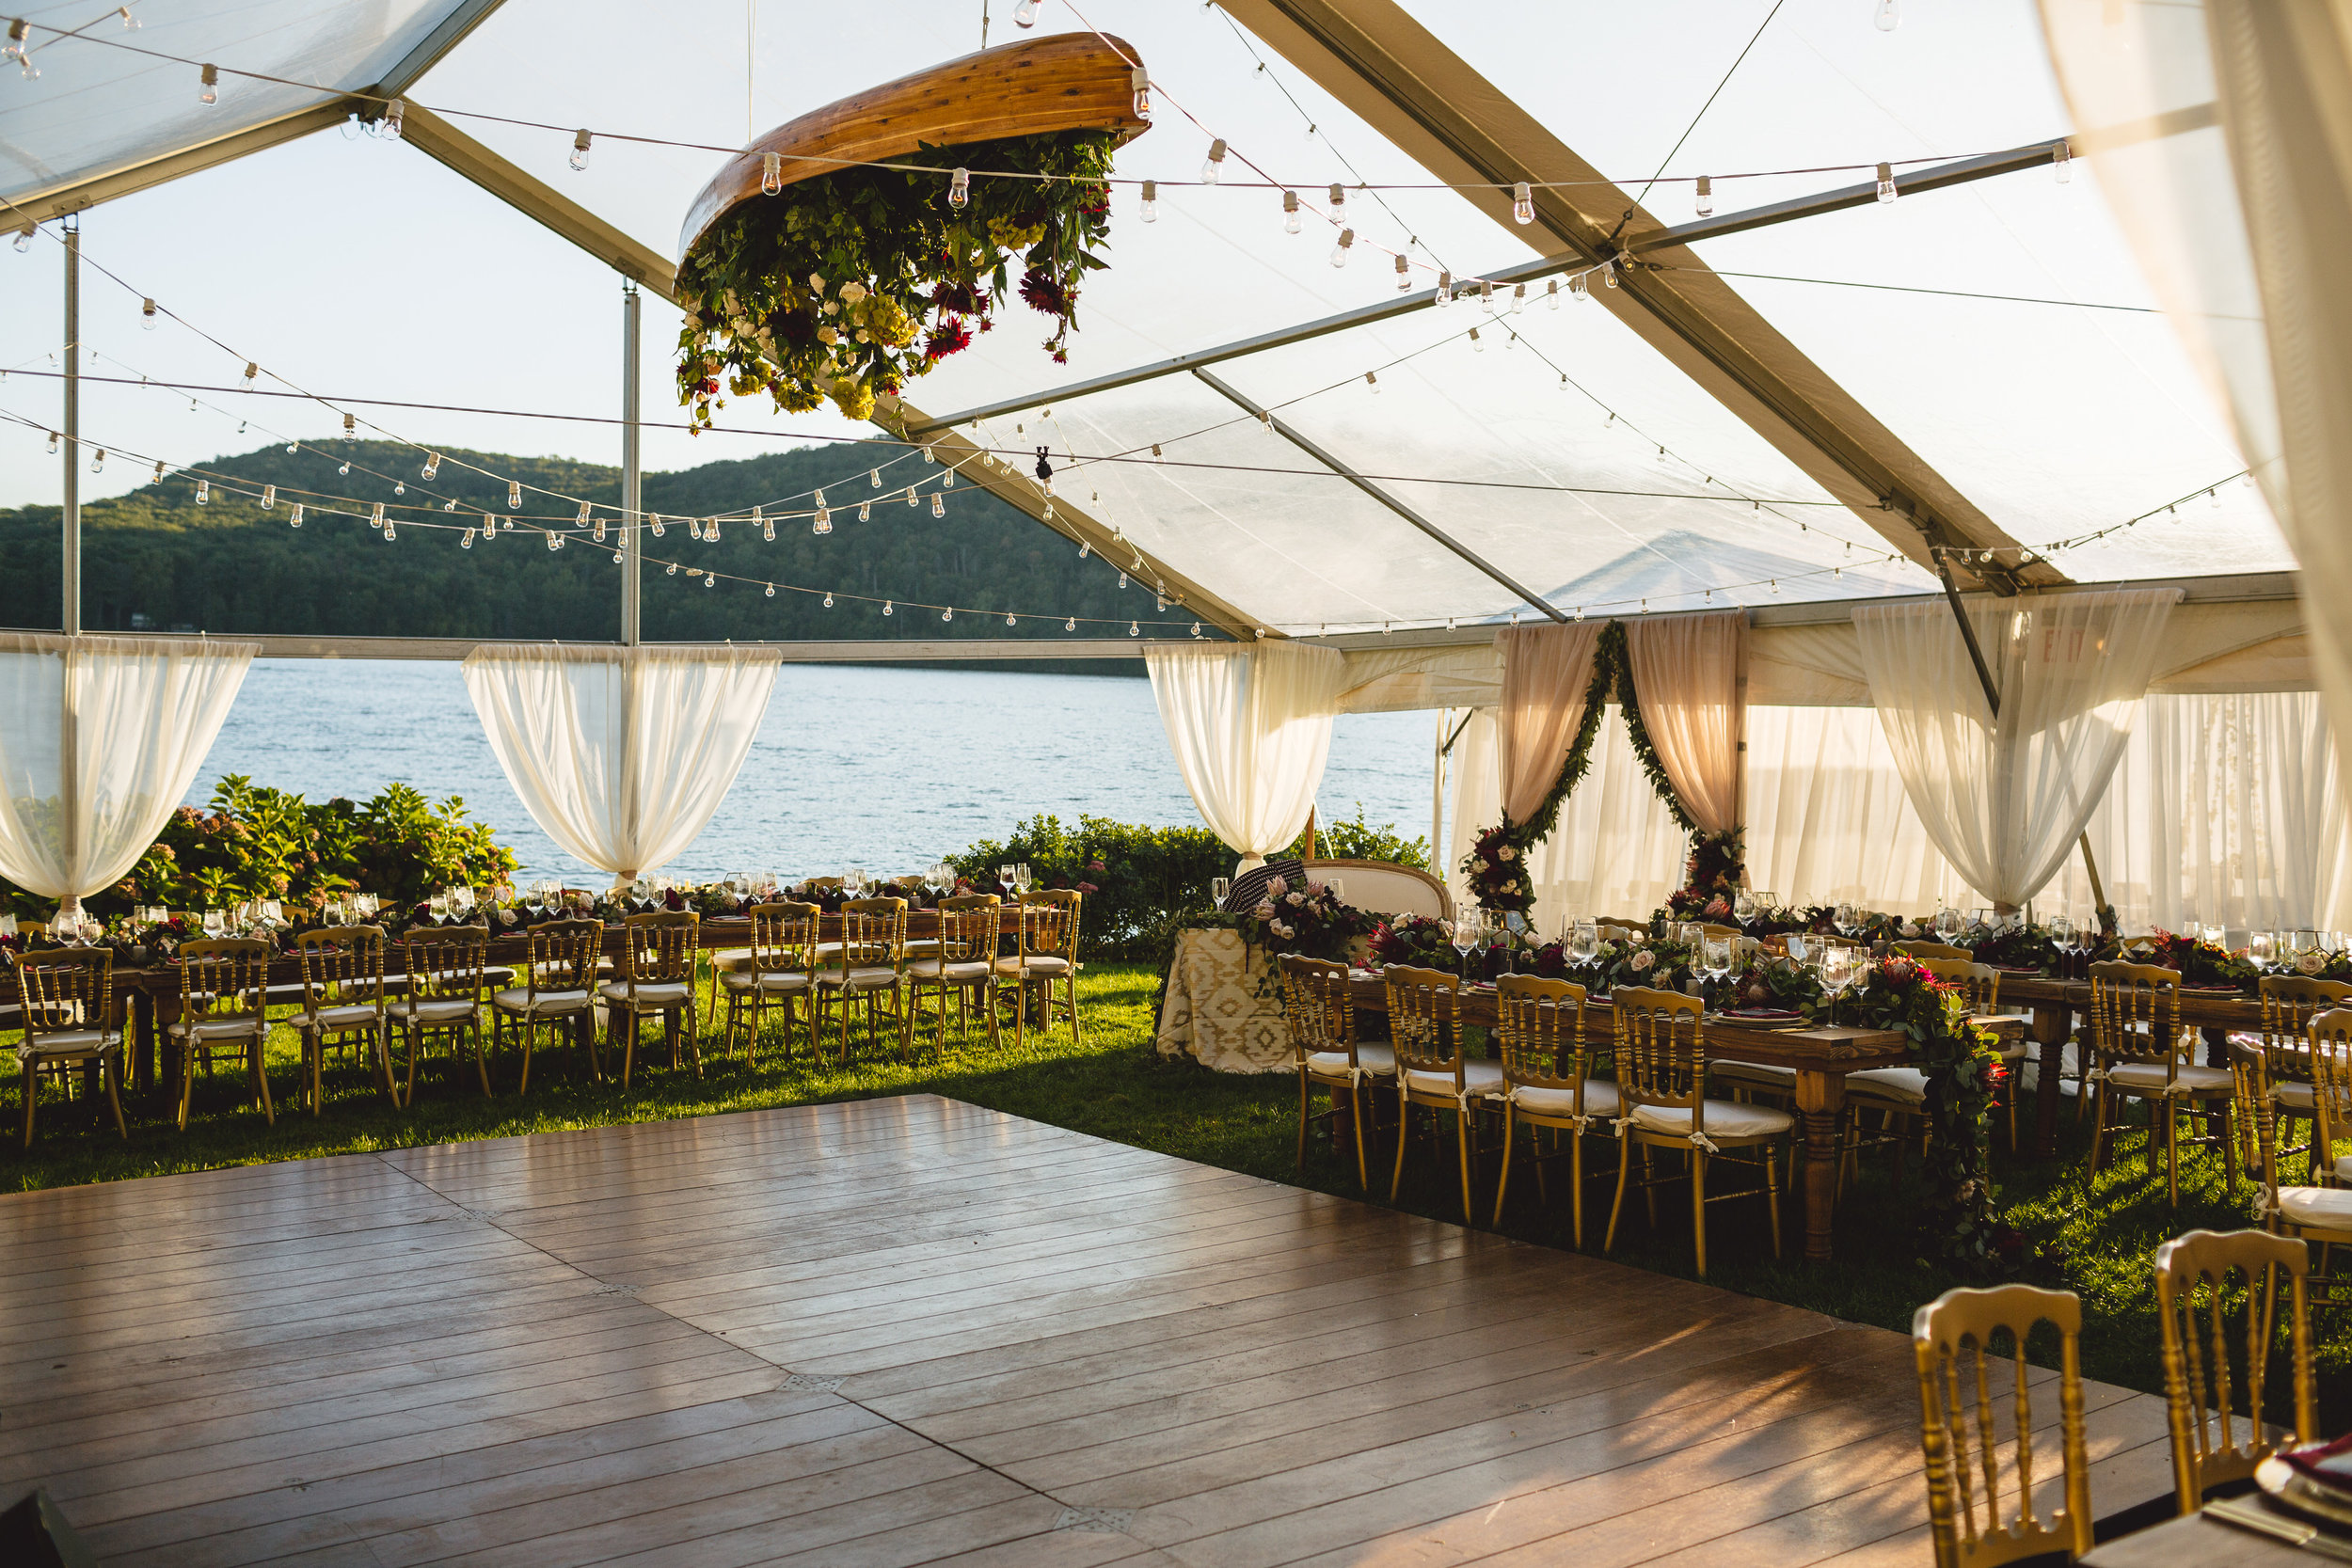 Candlewood Lake Wedding Clear Tent CT080.JPG